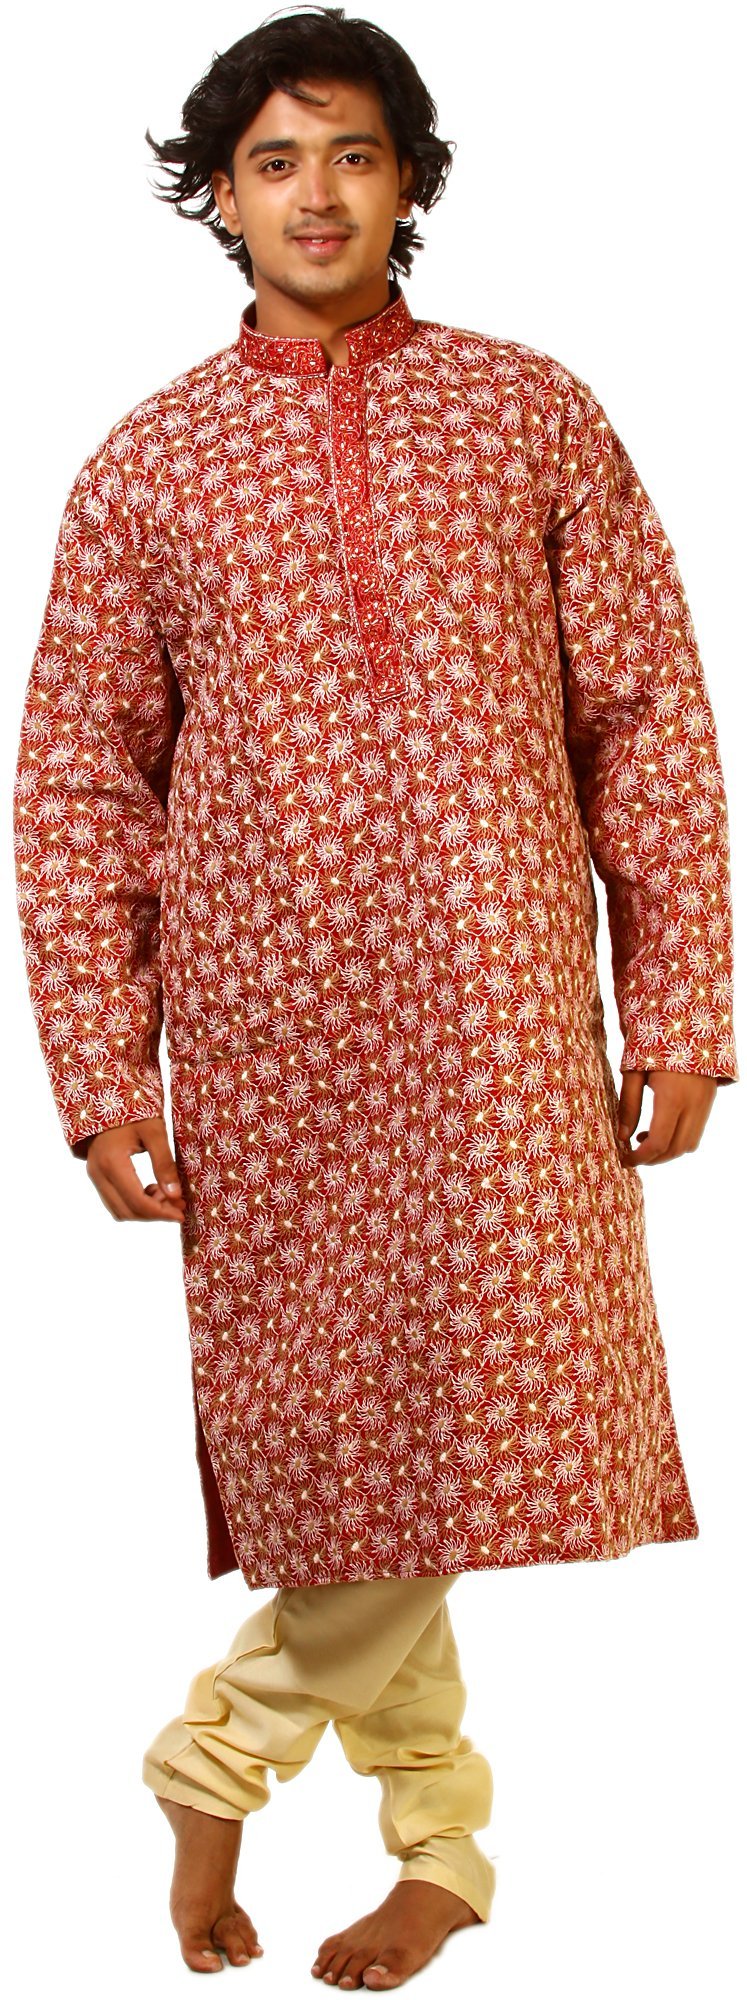 Exotic India Deep Claret-Red Wedding Kurta Pajama Set w Size 42 by Exotic India